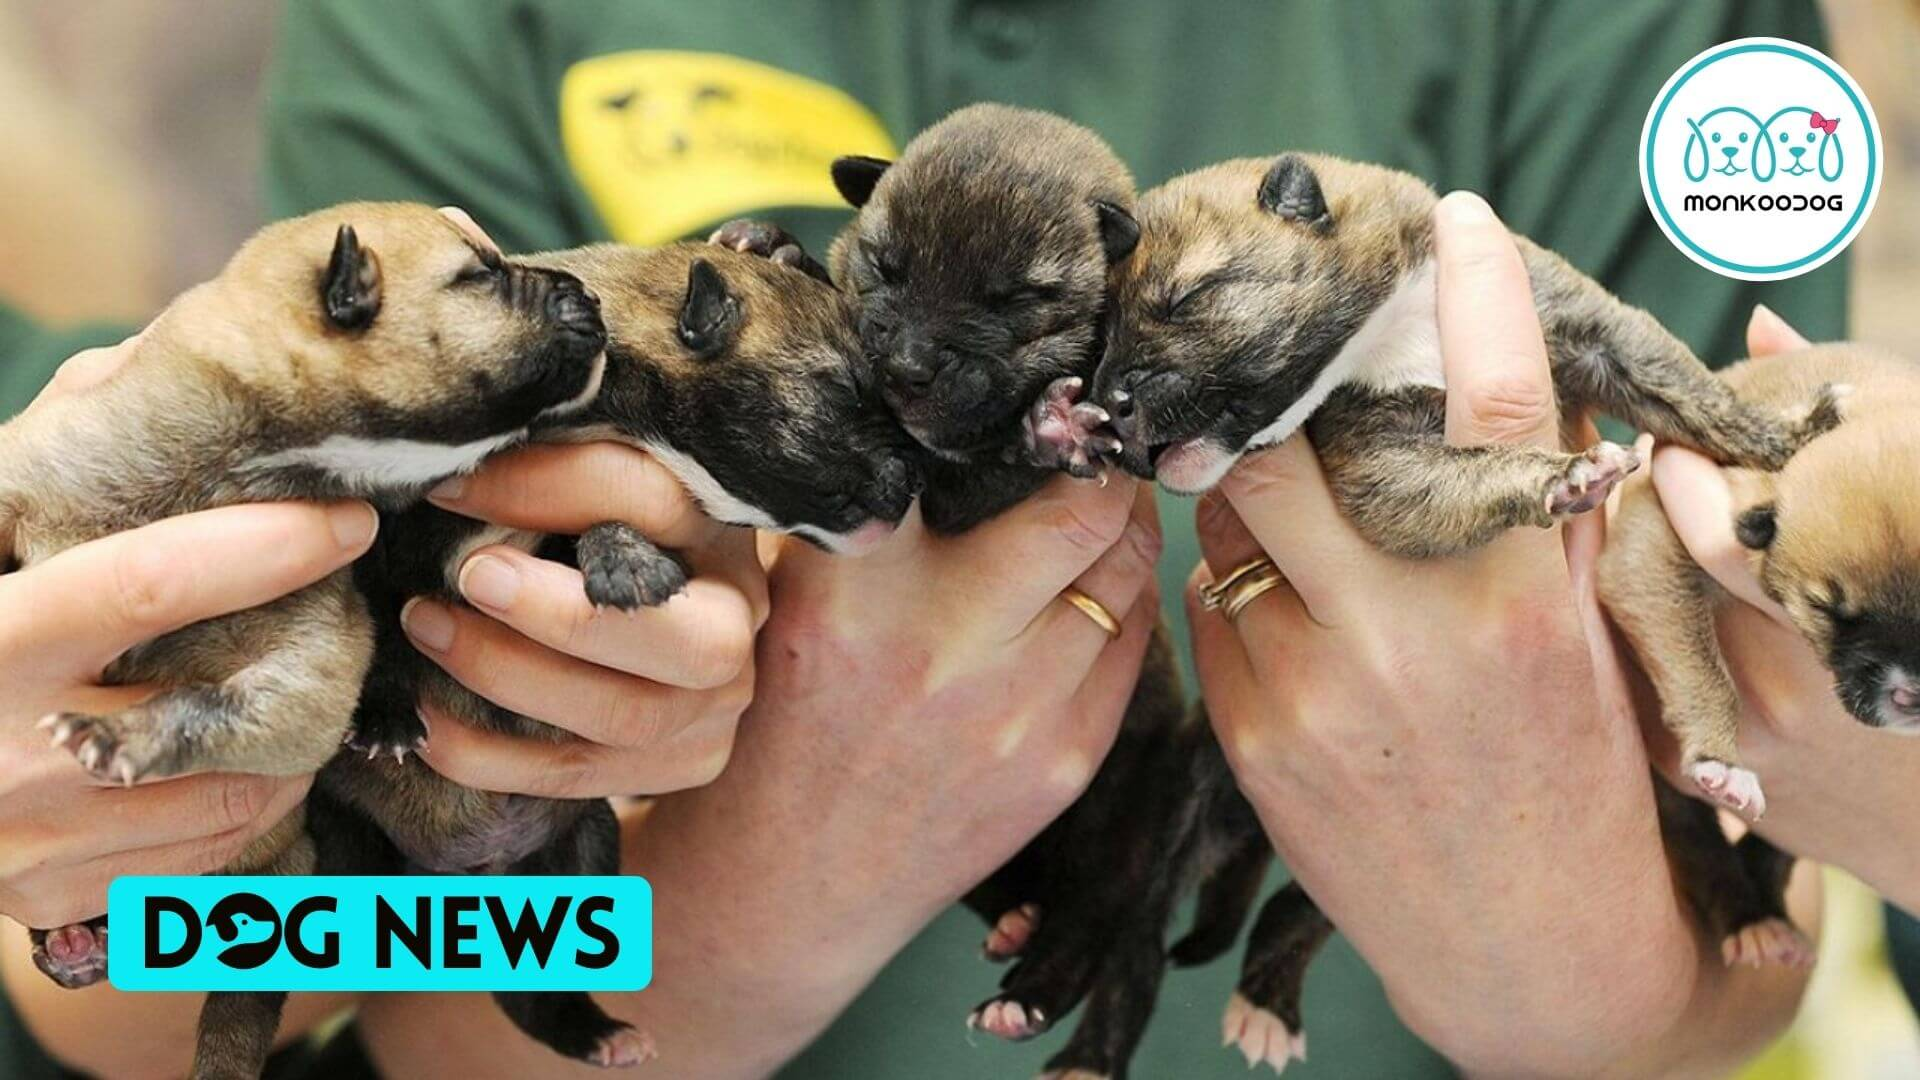 Government Introduces New Rules to crack down on puppy smuggling and safeguard dog welfare.